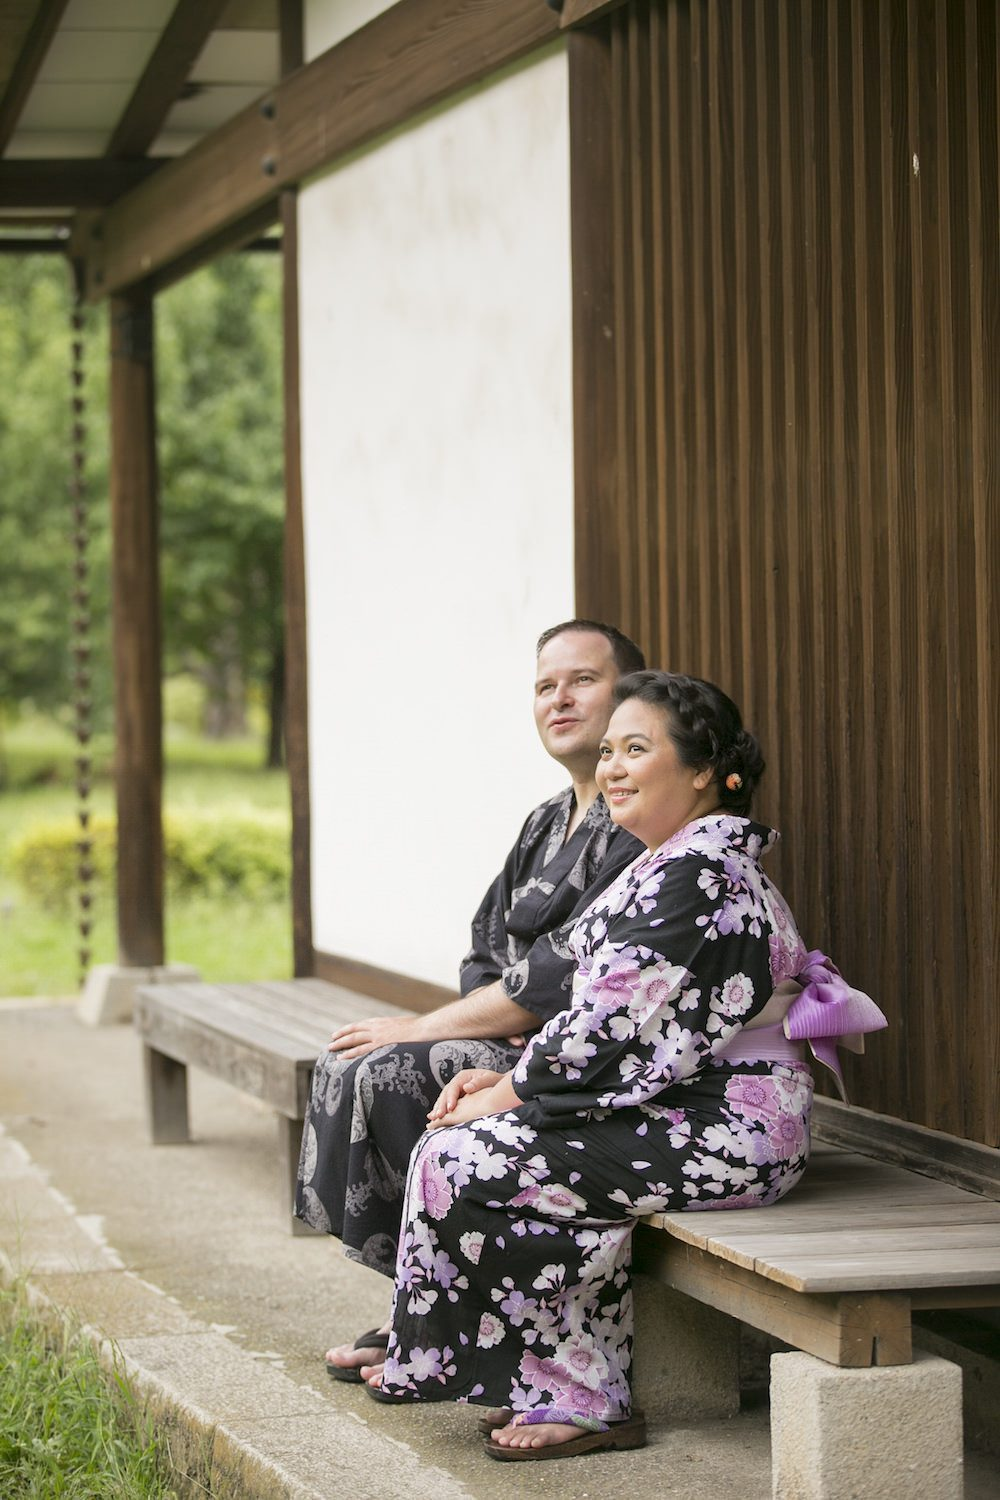 Pre-wedding photo at Hamarikyu garden in Tokyo with a couple sitting in front of a traditional Japanese style house